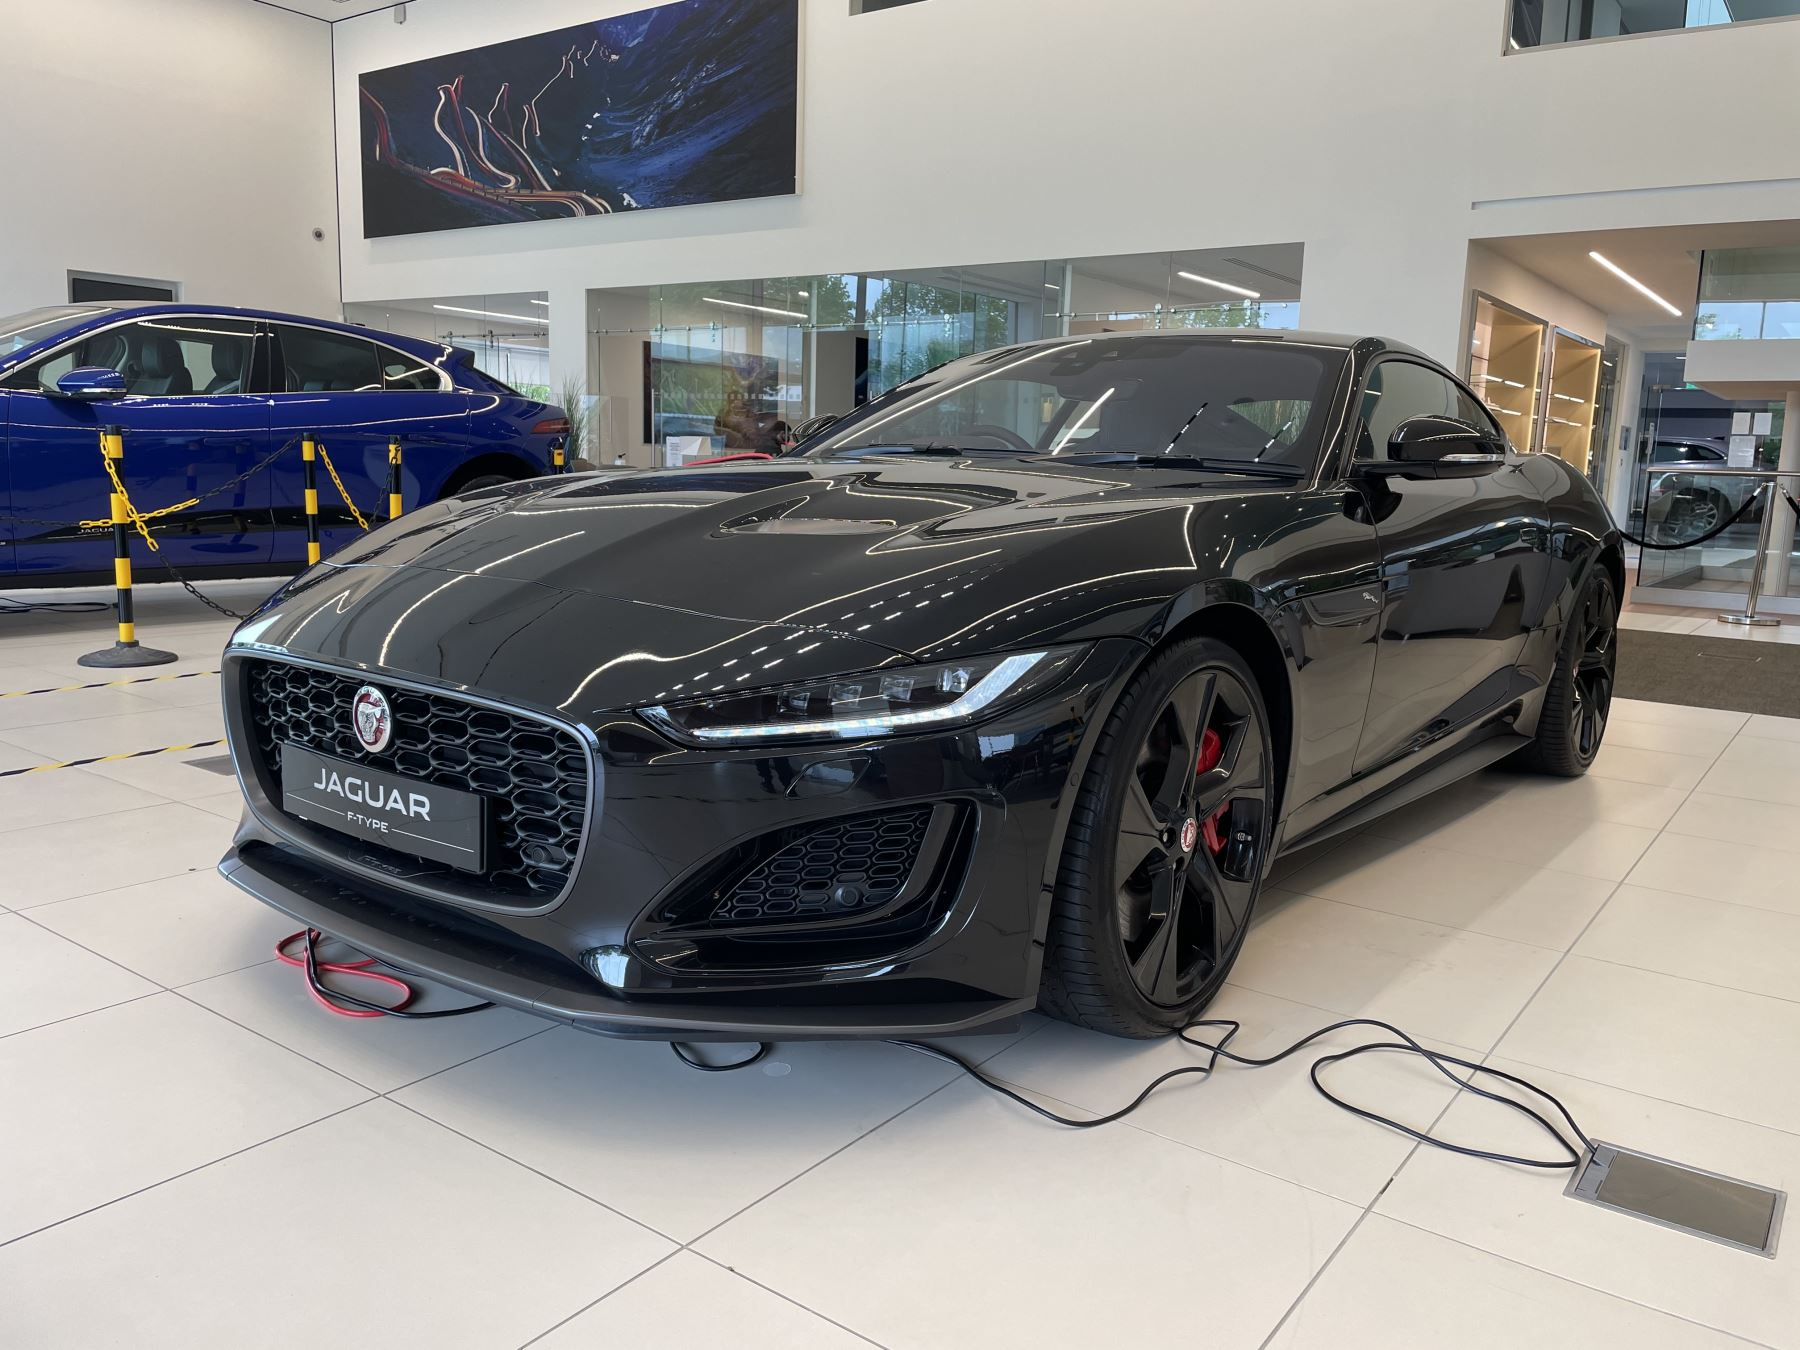 Jaguar F-TYPE 5.0 P450 S/C V8 First Edition AWD SPECIAL EDITIONS image 1